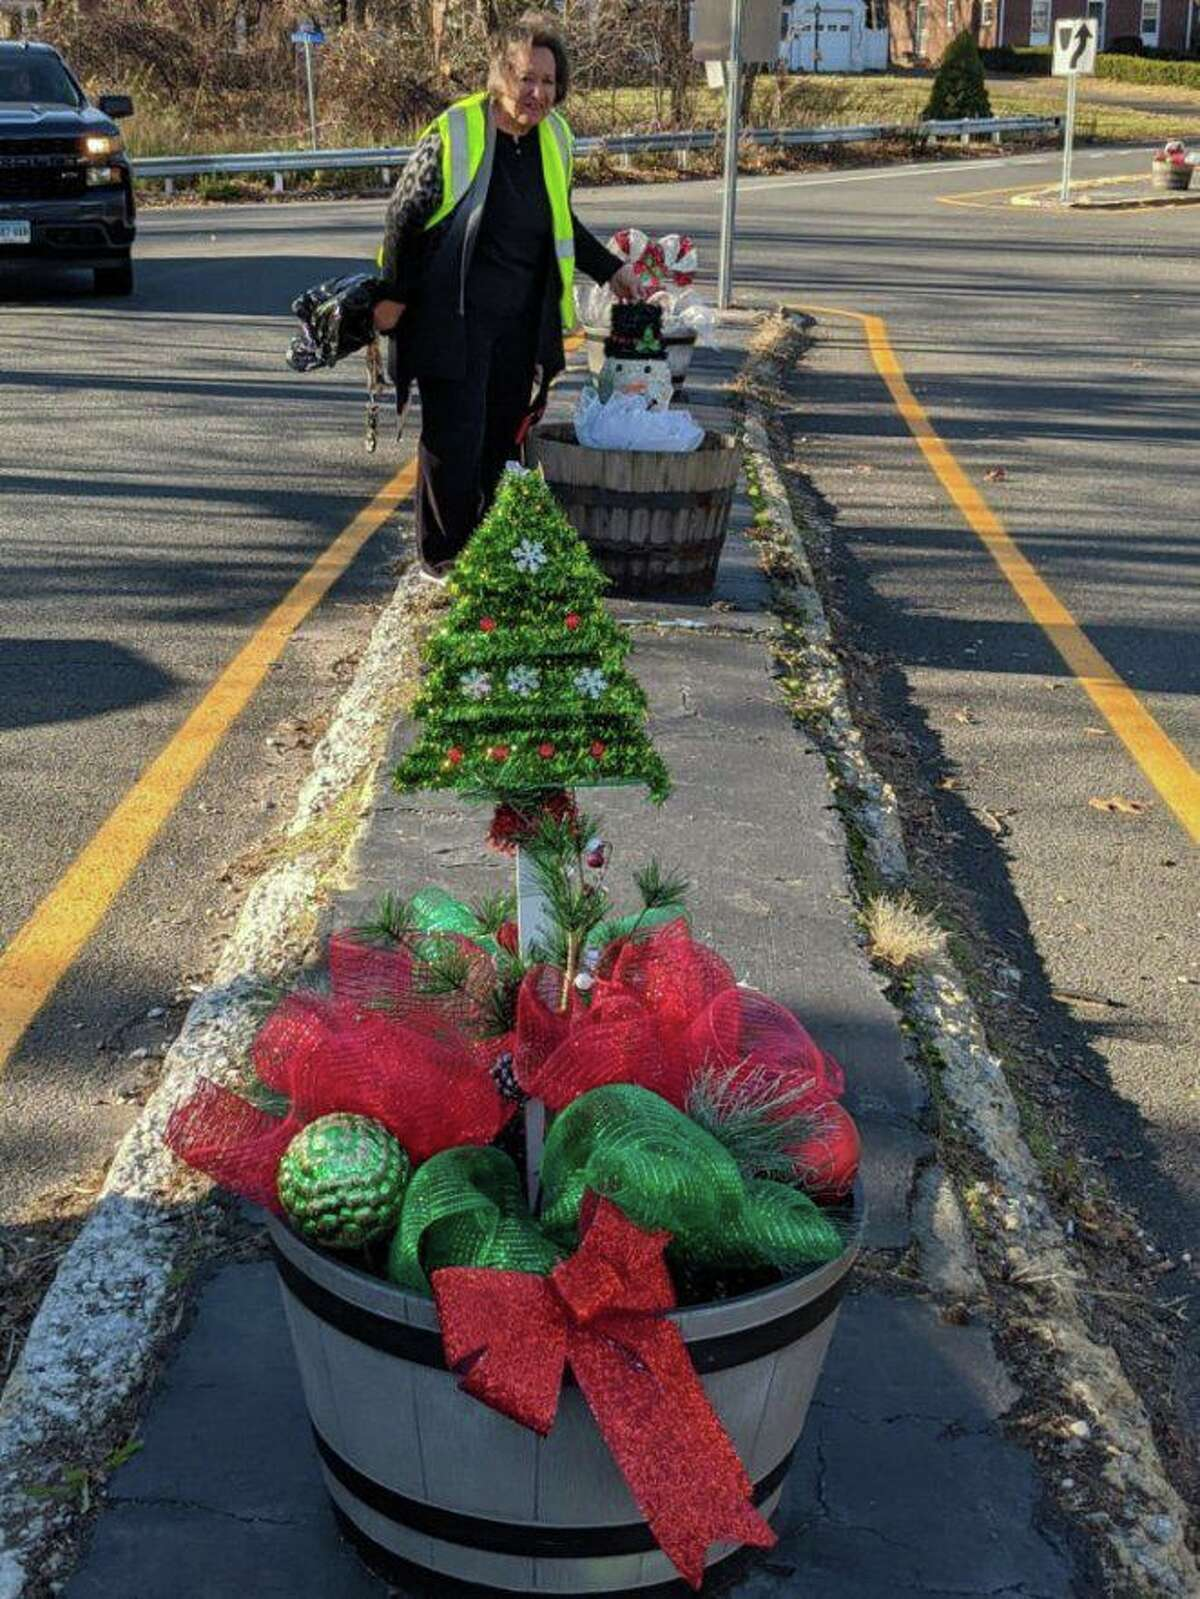 Members of the North Haven Garden Club provided holiday decorations in barrels and pots around town. Above, member Gerri Giordano works on Maple Avenue.